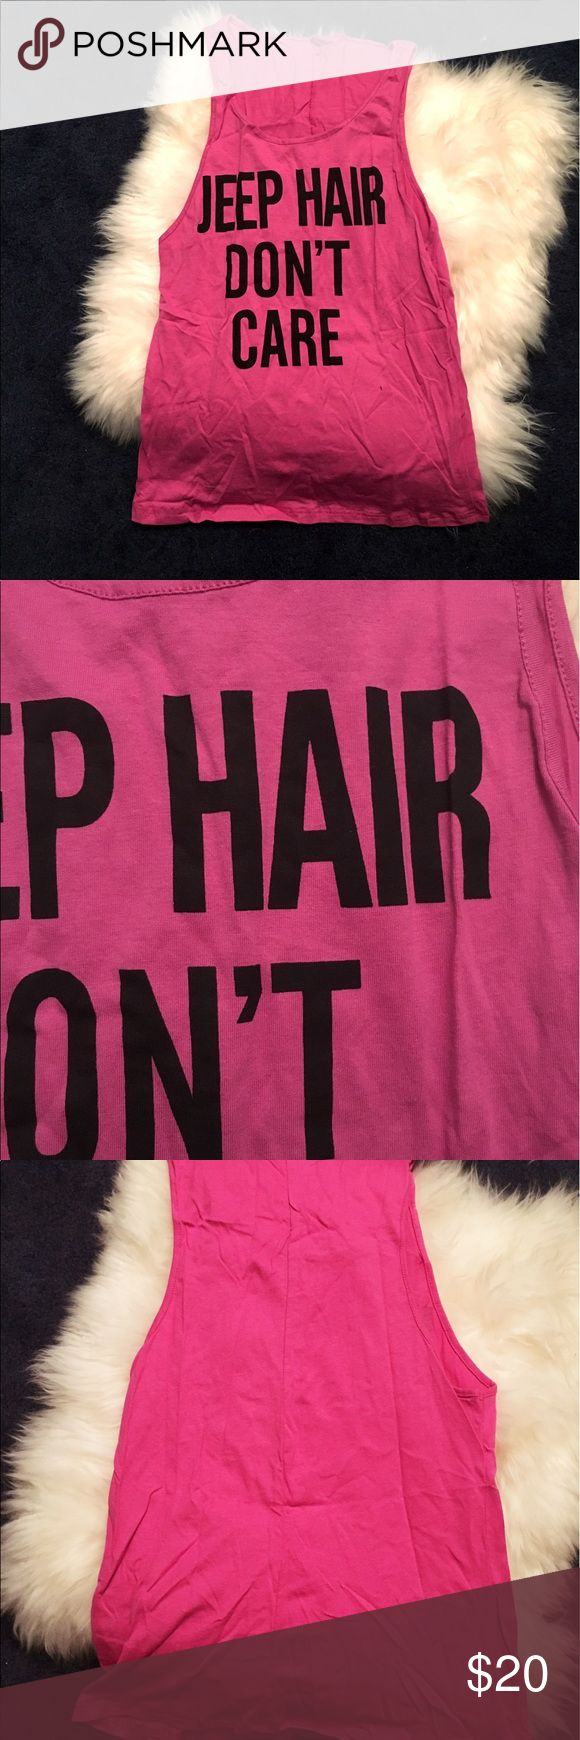 Jeep hair don't care tank top Jeep hair don't care cutoff tank top. Fuchsia/ pink color top with black lettering Tops Tank Tops